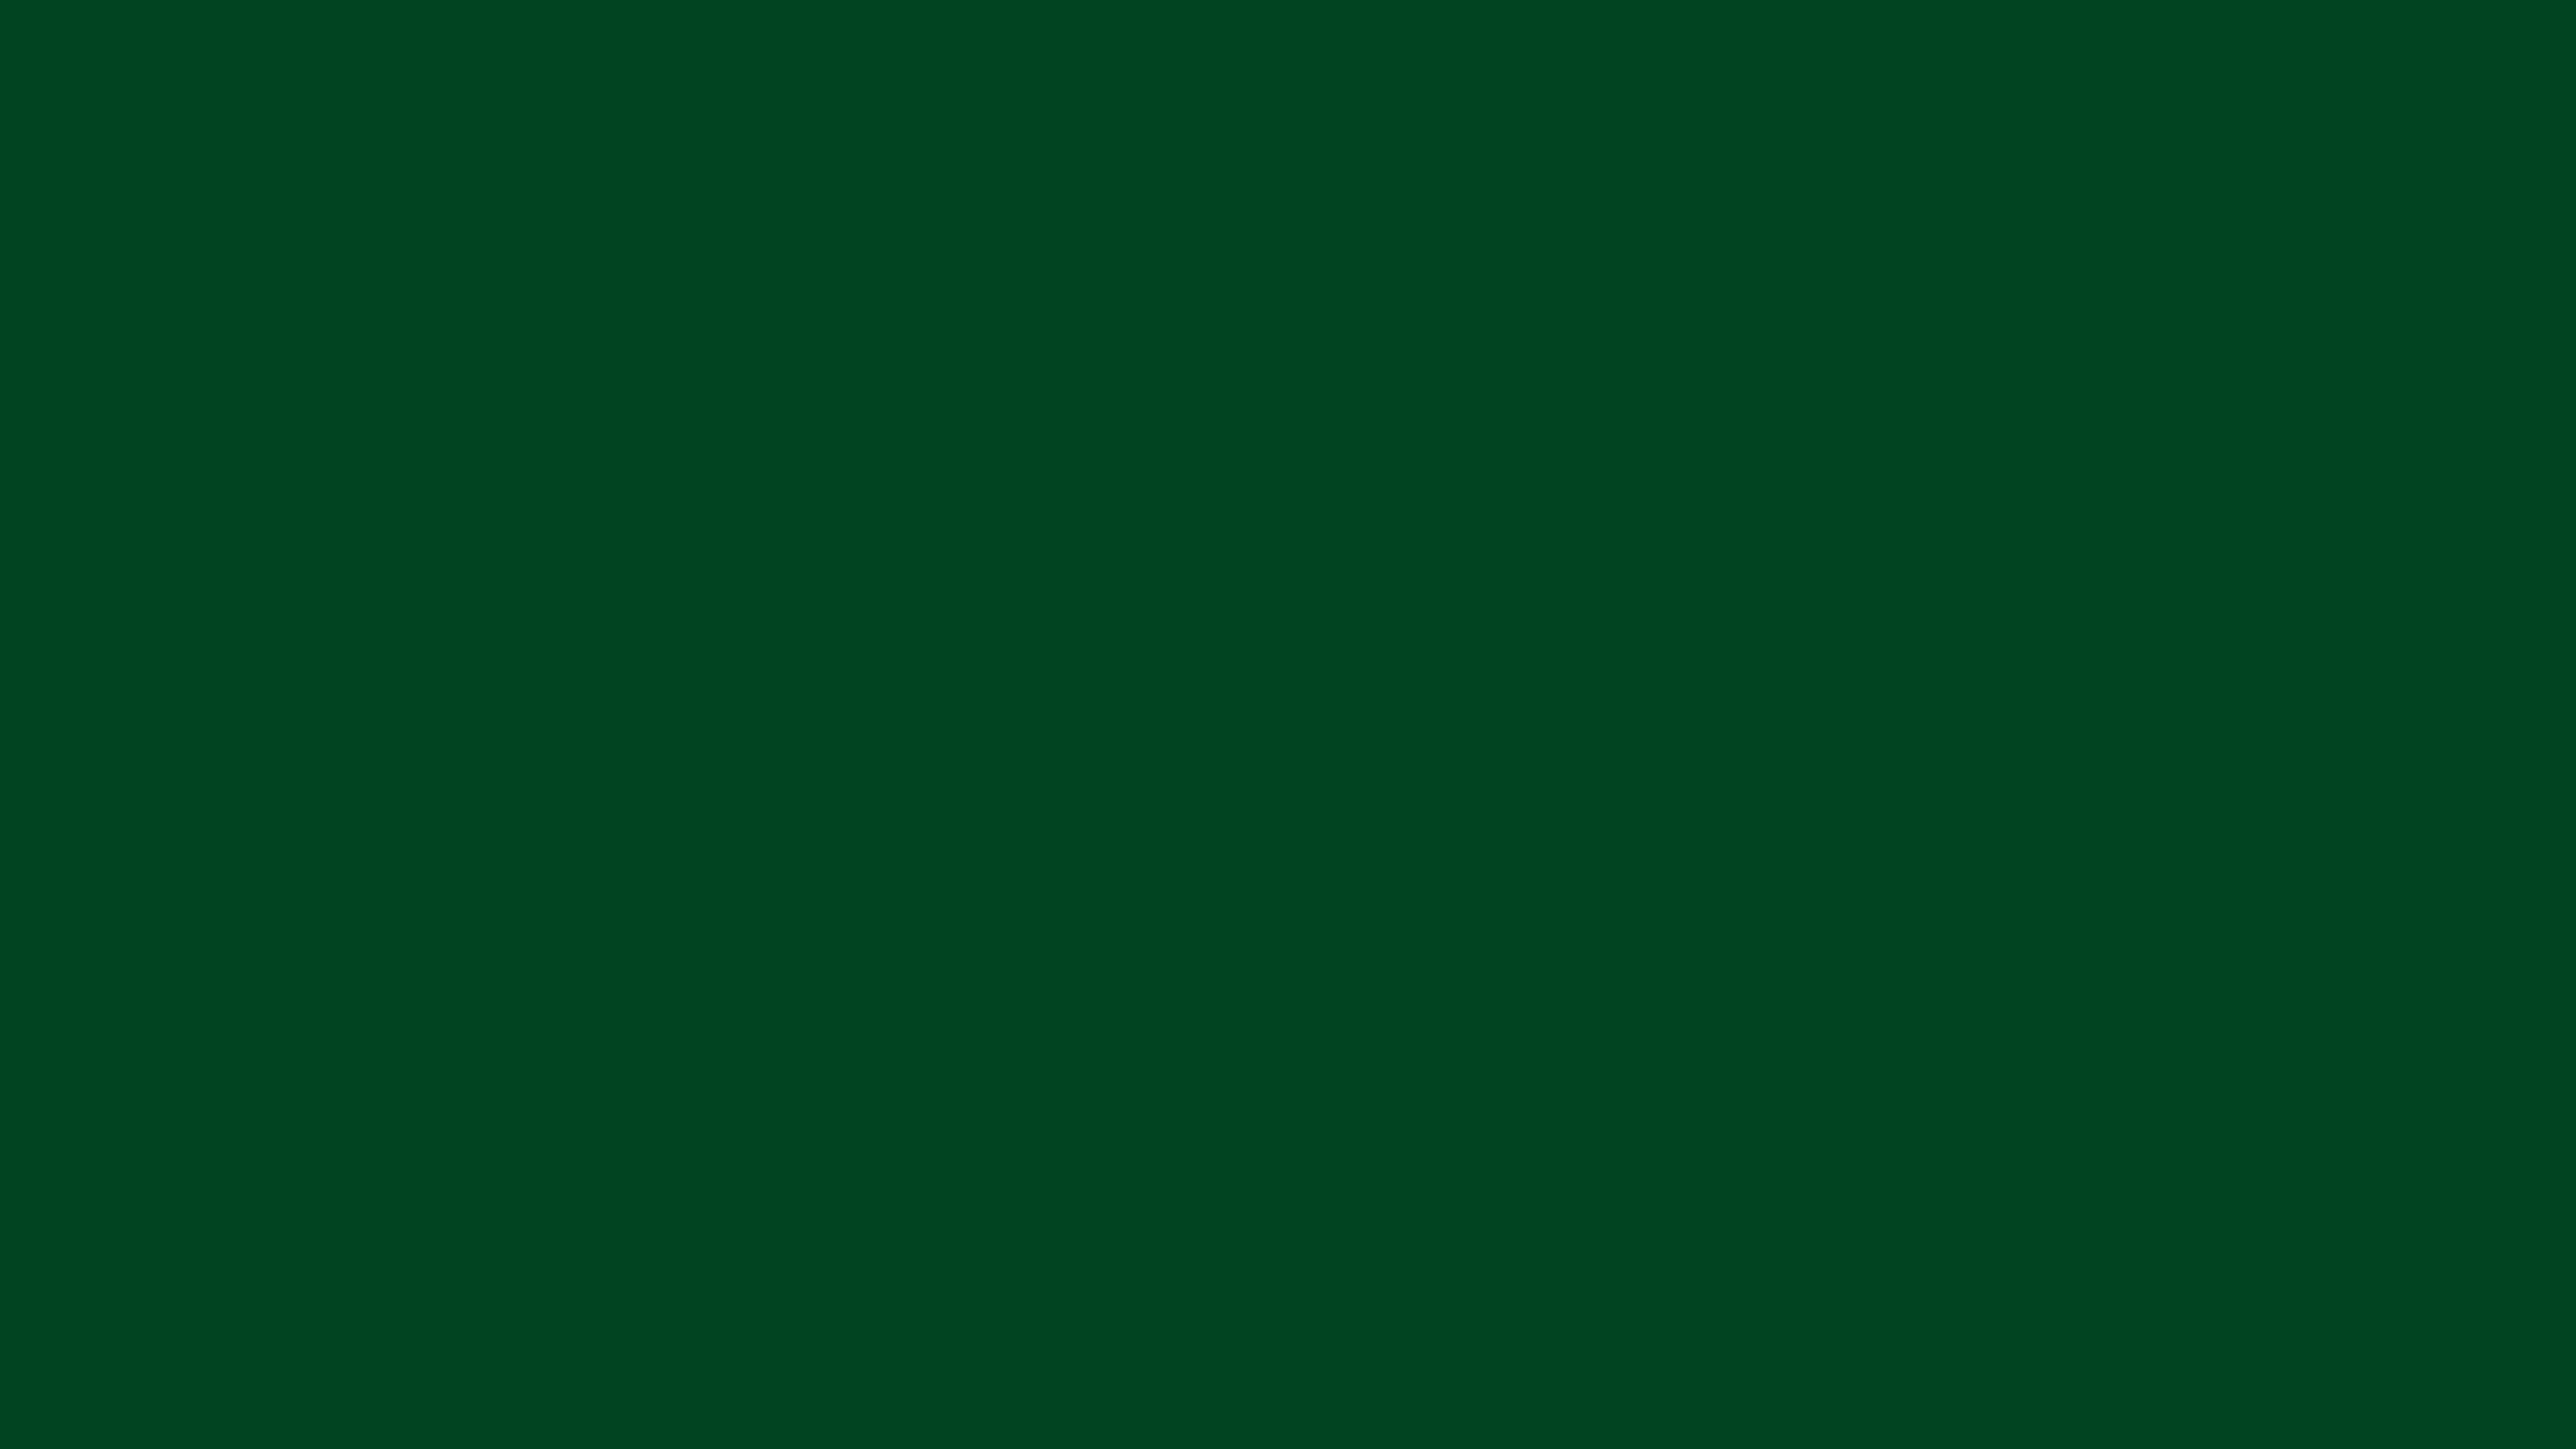 4096x2304 UP Forest Green Solid Color Background